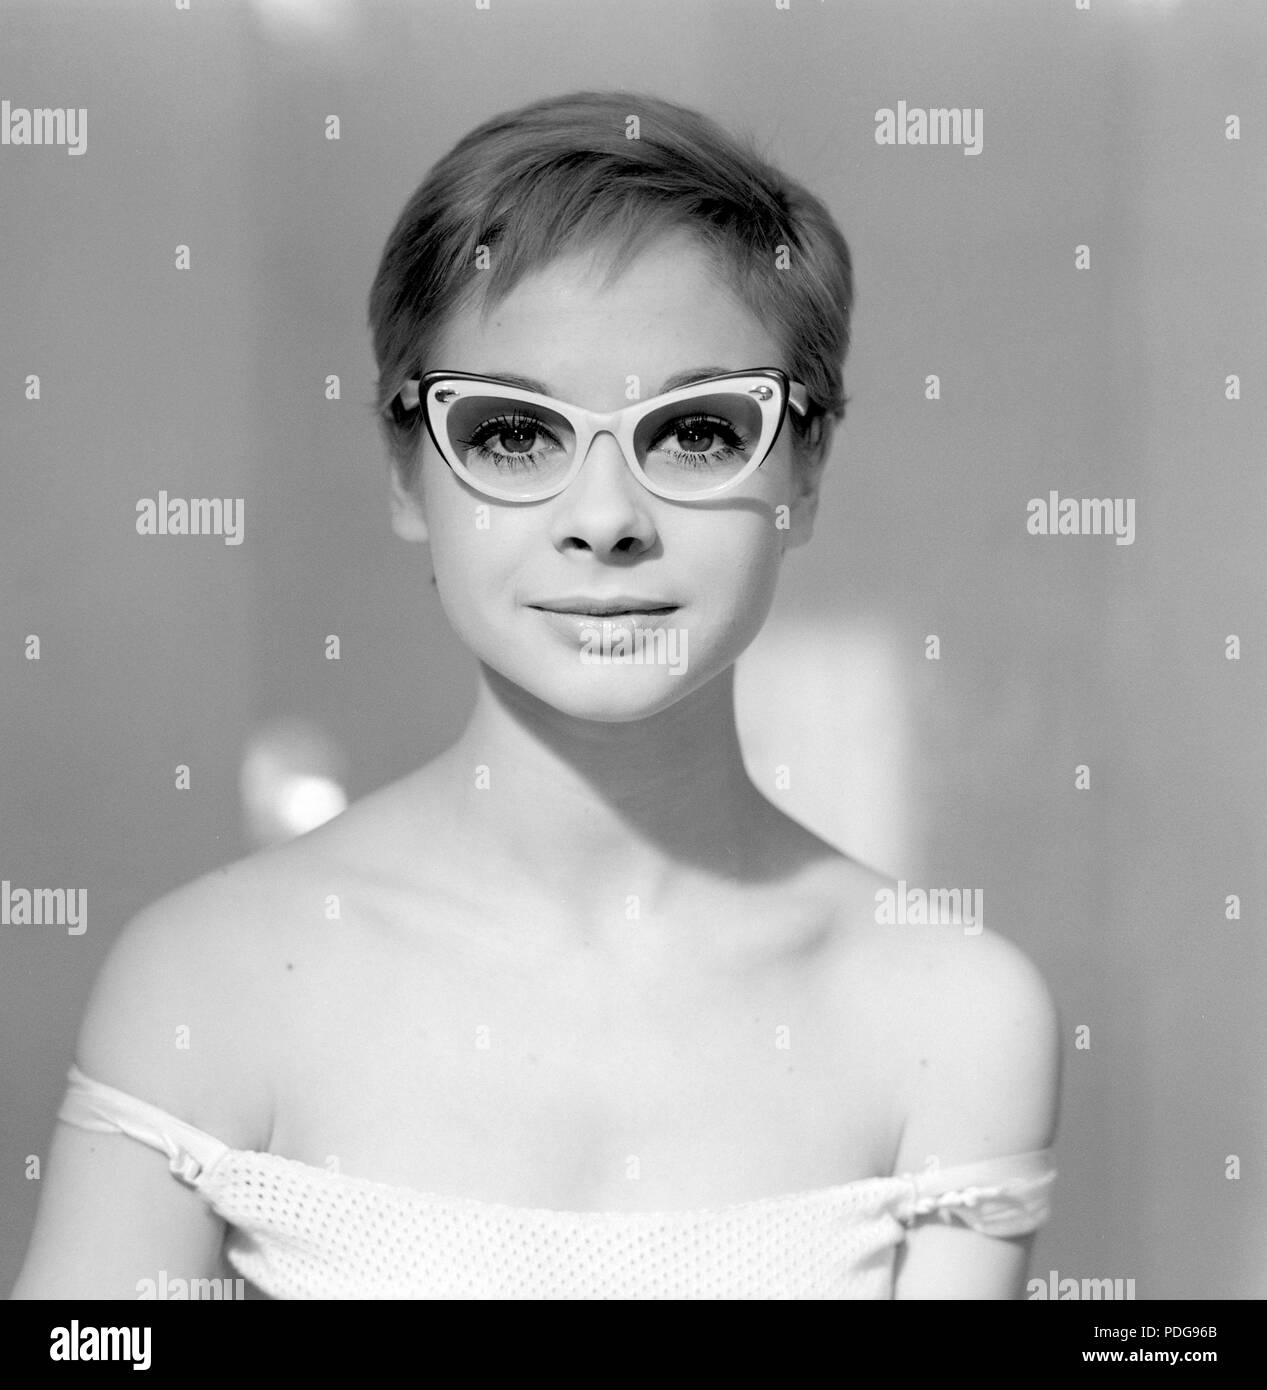 1960s glasses. A young woman in glasses and bows January 1961. Models name Monica Flodqvist - Stock Image